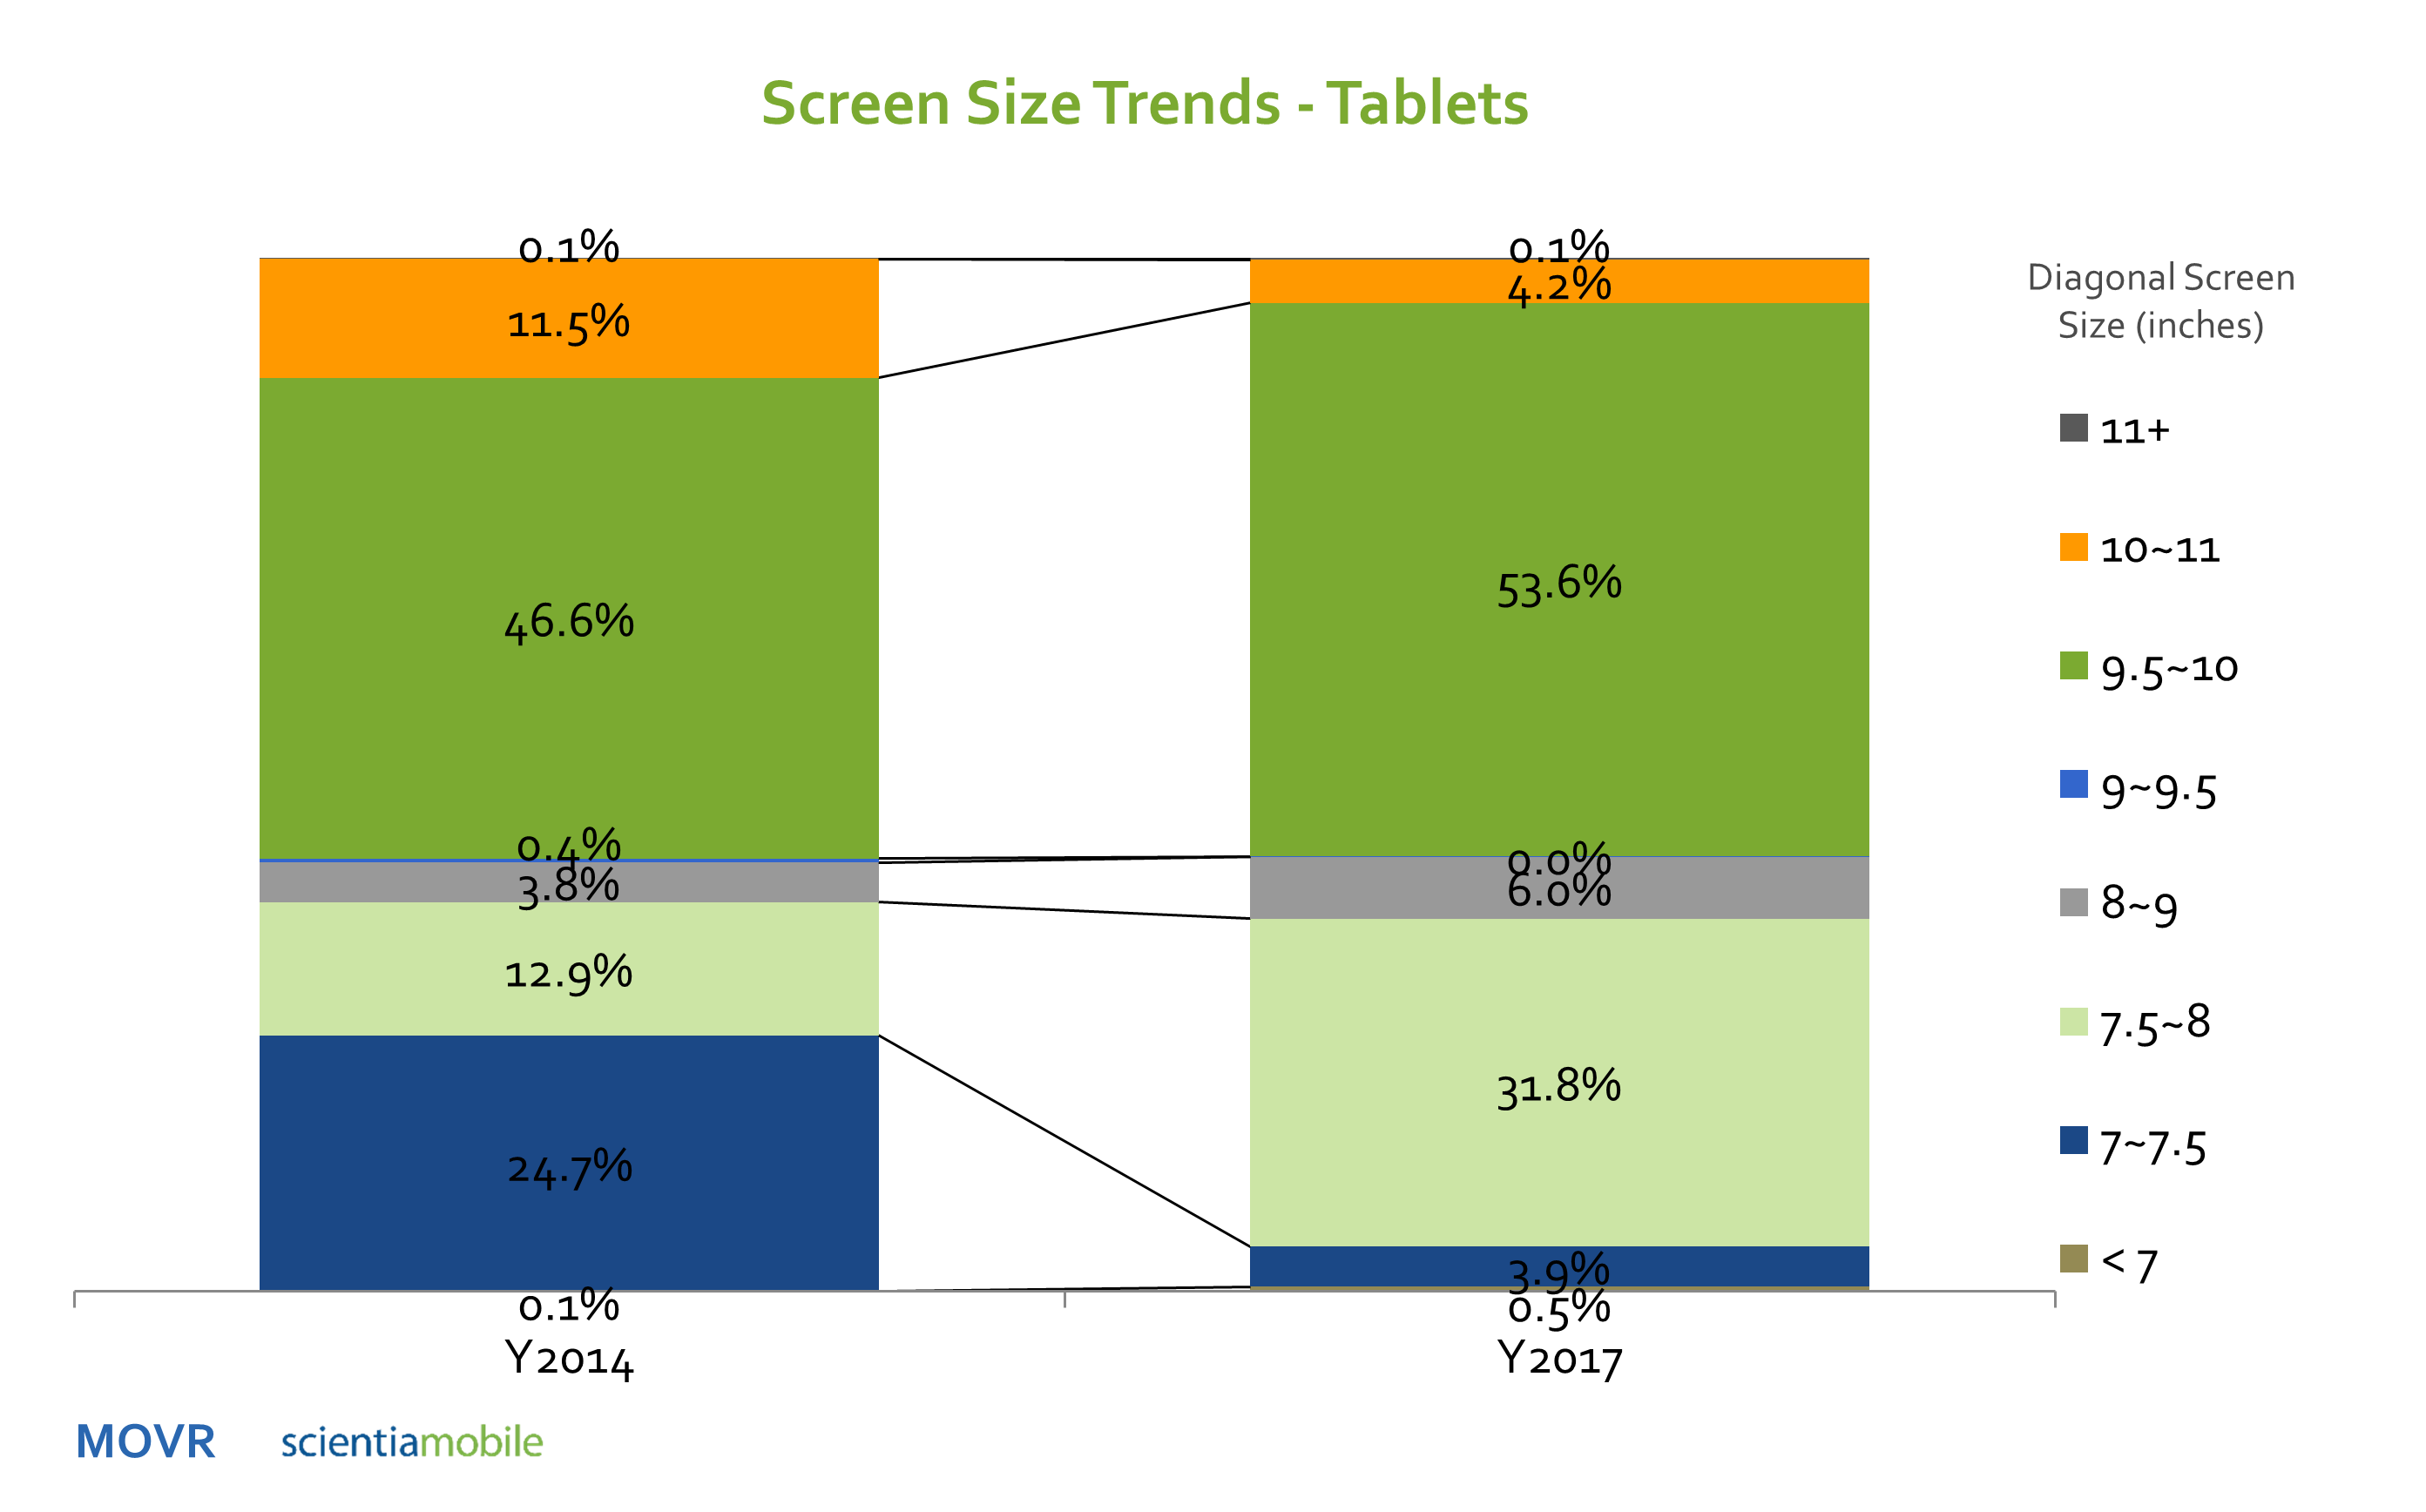 Tablet Screen Size Trend